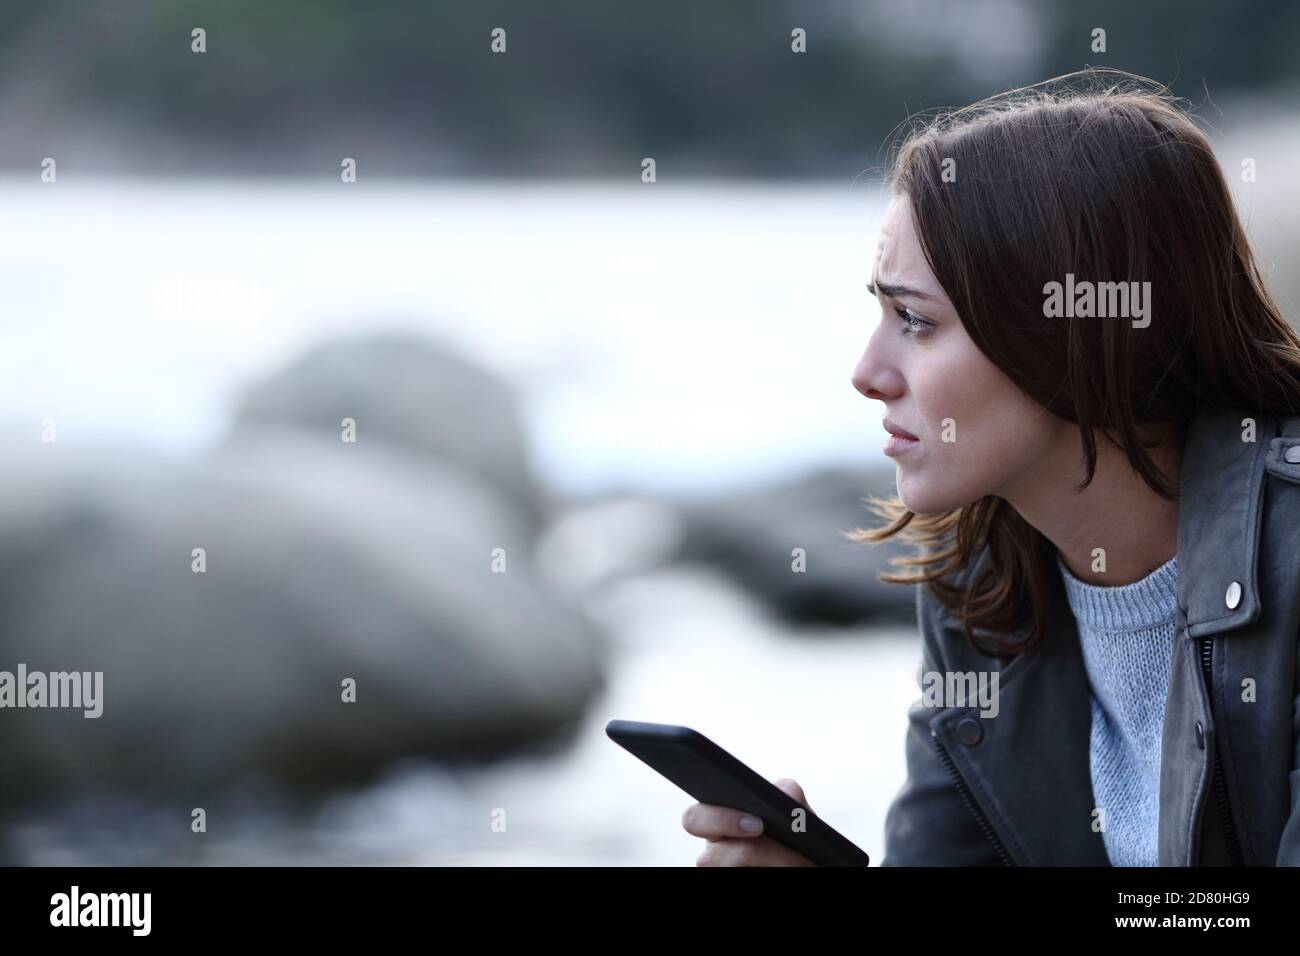 Sad woman looking away holding smart phone alone on the beach Stock Photo